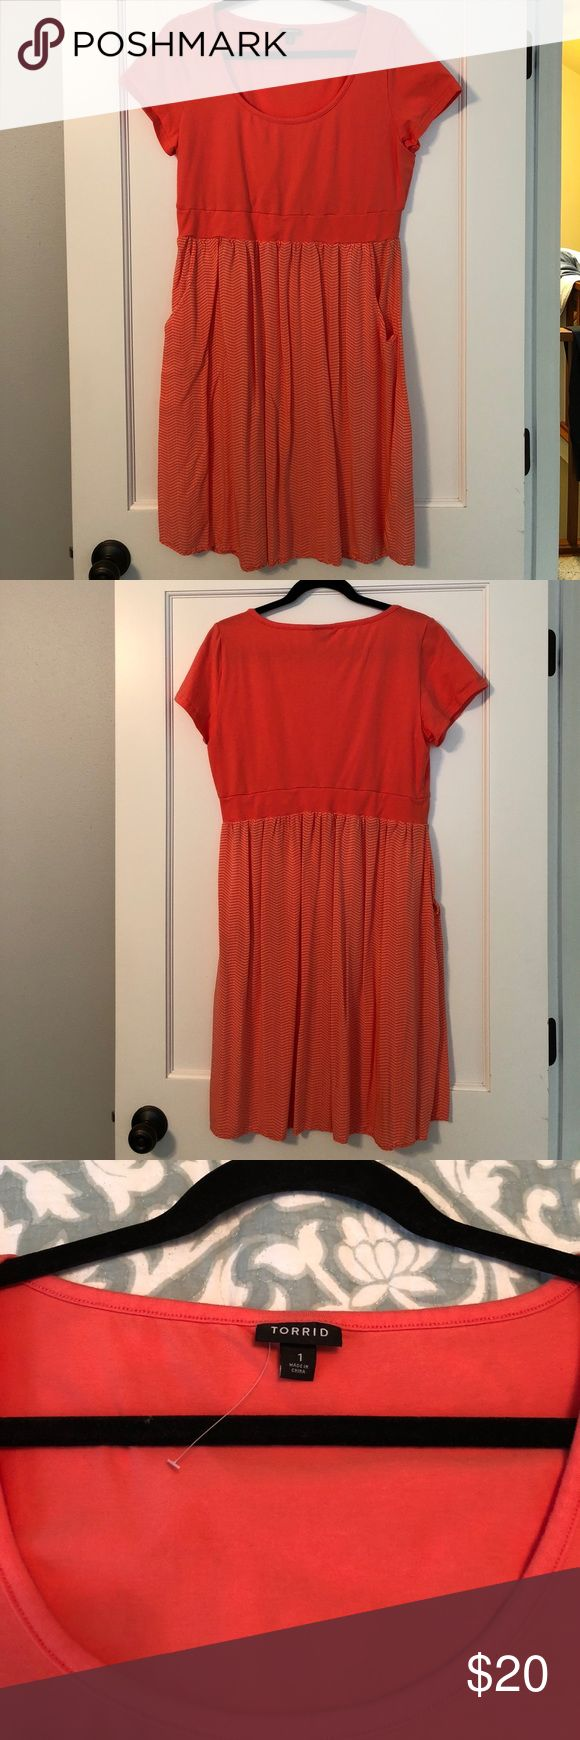 NWOT Torrid Coral Sundress NWOT Torrid coral sundress. The top is stretchy & the lower half is  flowy with pockets. Extremely flattering. torrid Dresses